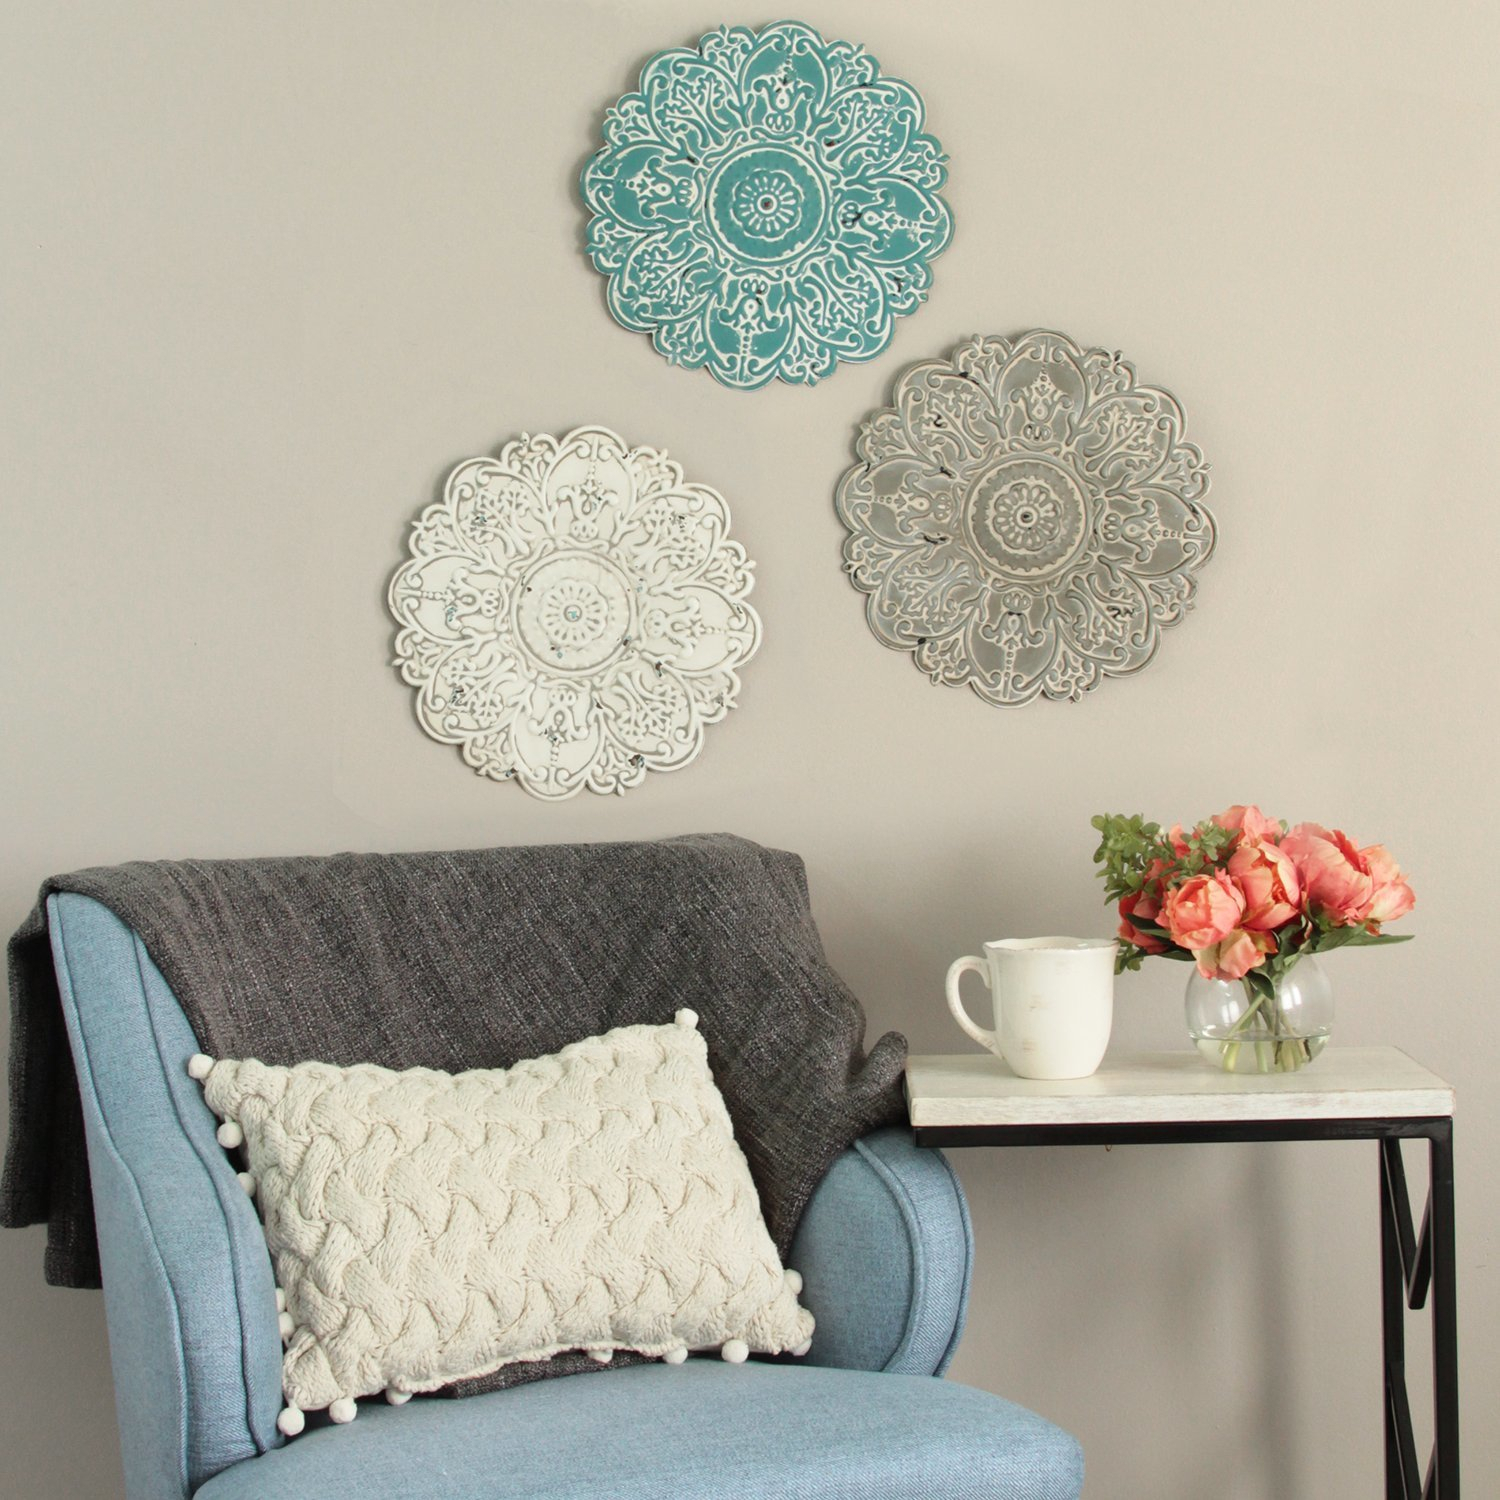 Wall Accents | Joss & Main throughout Small Medallion Wall Decor (Image 27 of 30)